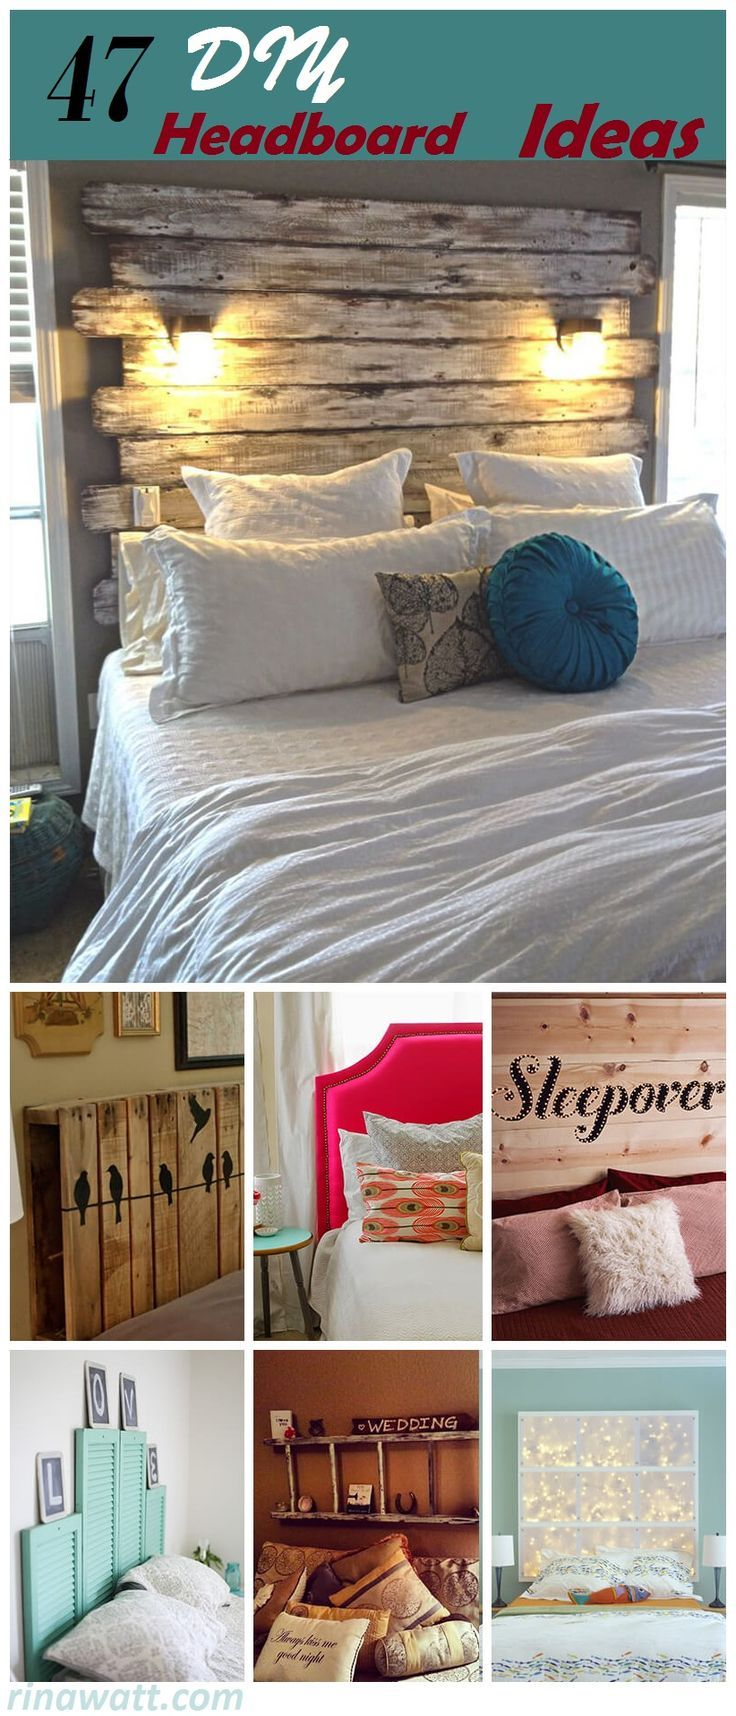 Feeling Creative Try Any One Of These Amazing 47 Unique Headboard Ideas 1 Rus Headboard Diy Easy Simple Headboard Rustic Headboard Diy